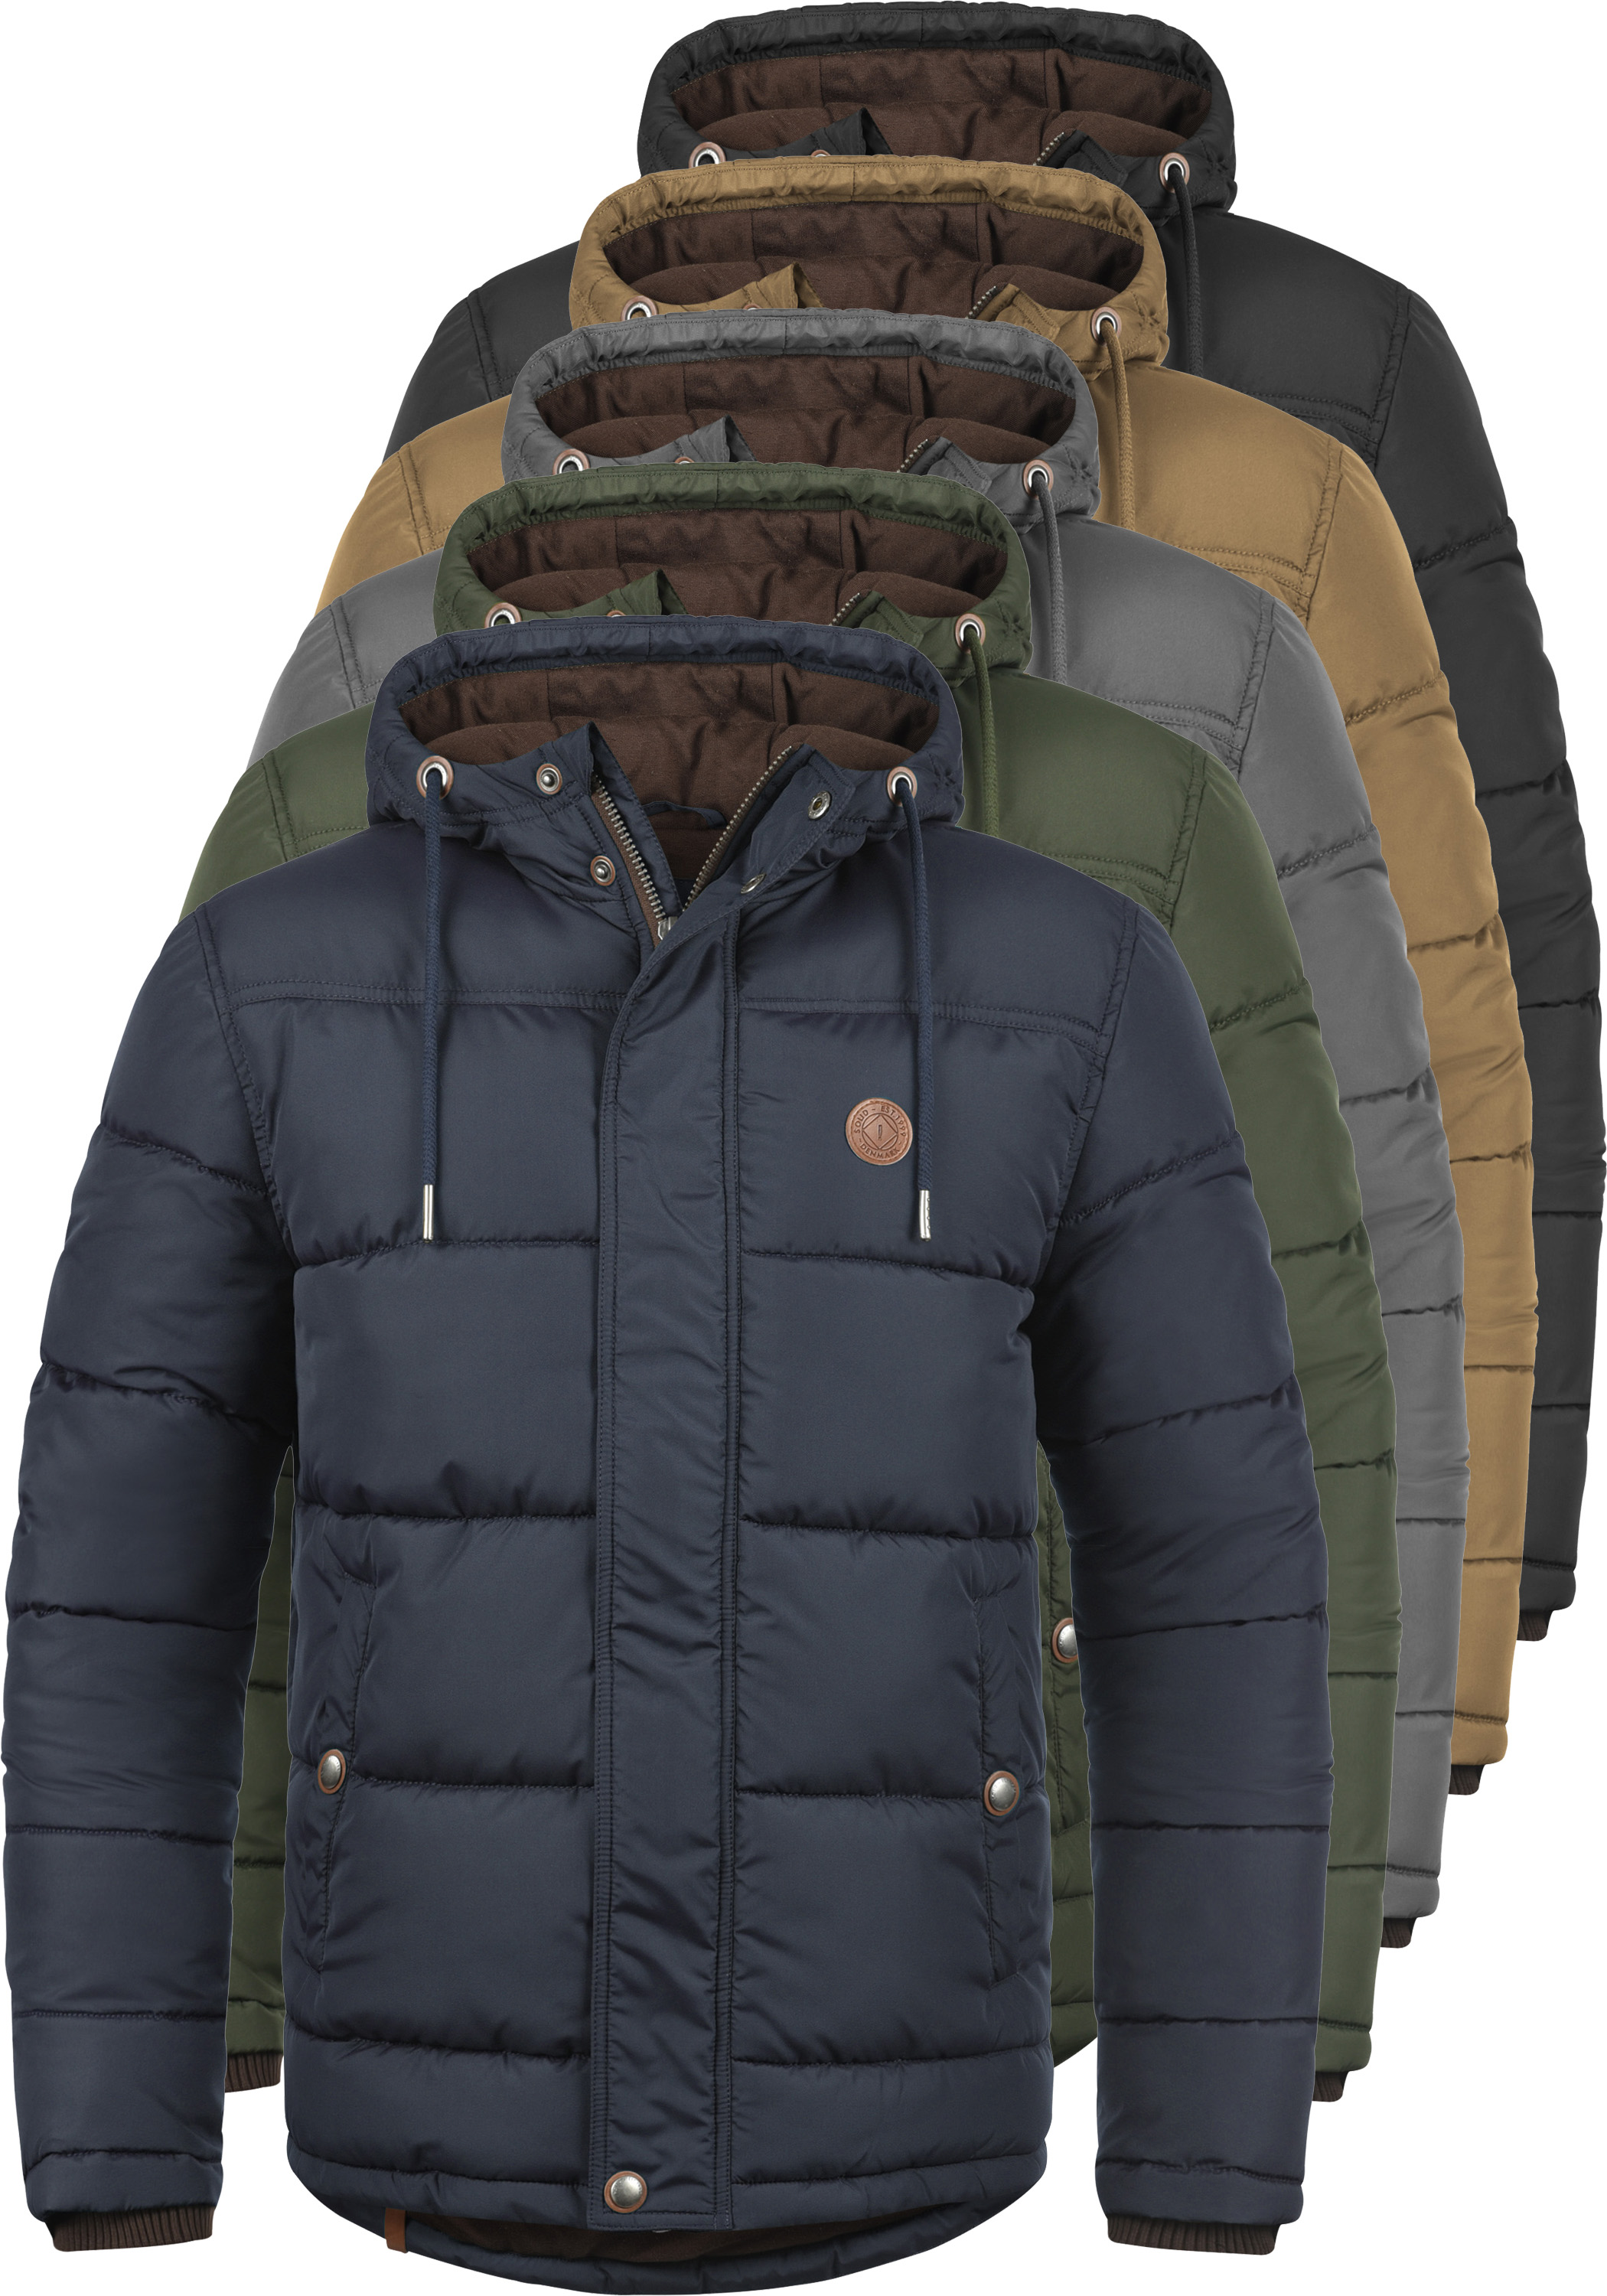 SOLID Denilson Winterjacke Steppjacke